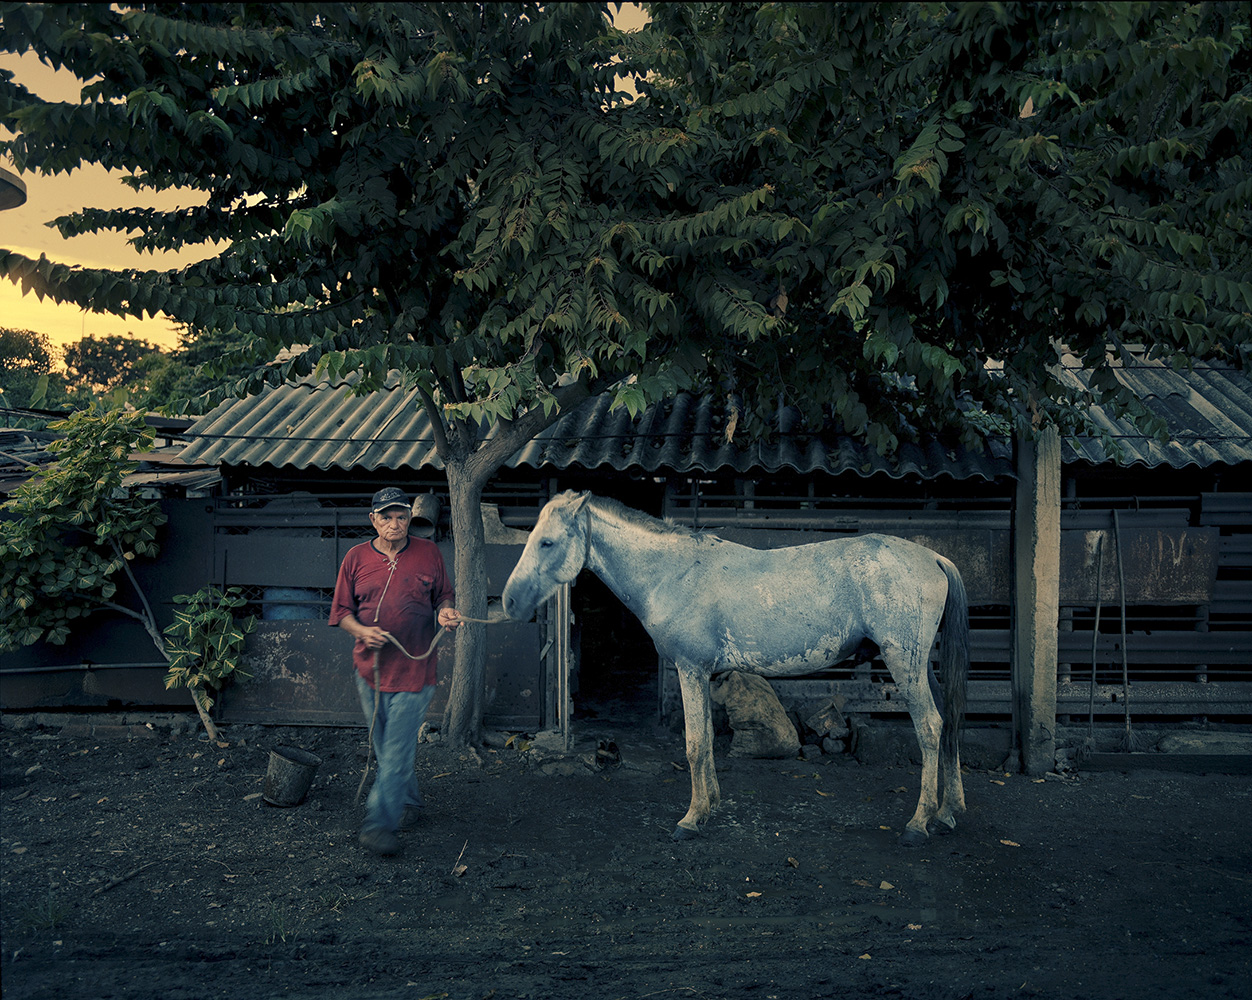 Carlos bathes his horse after a day's work in the town of Manati.